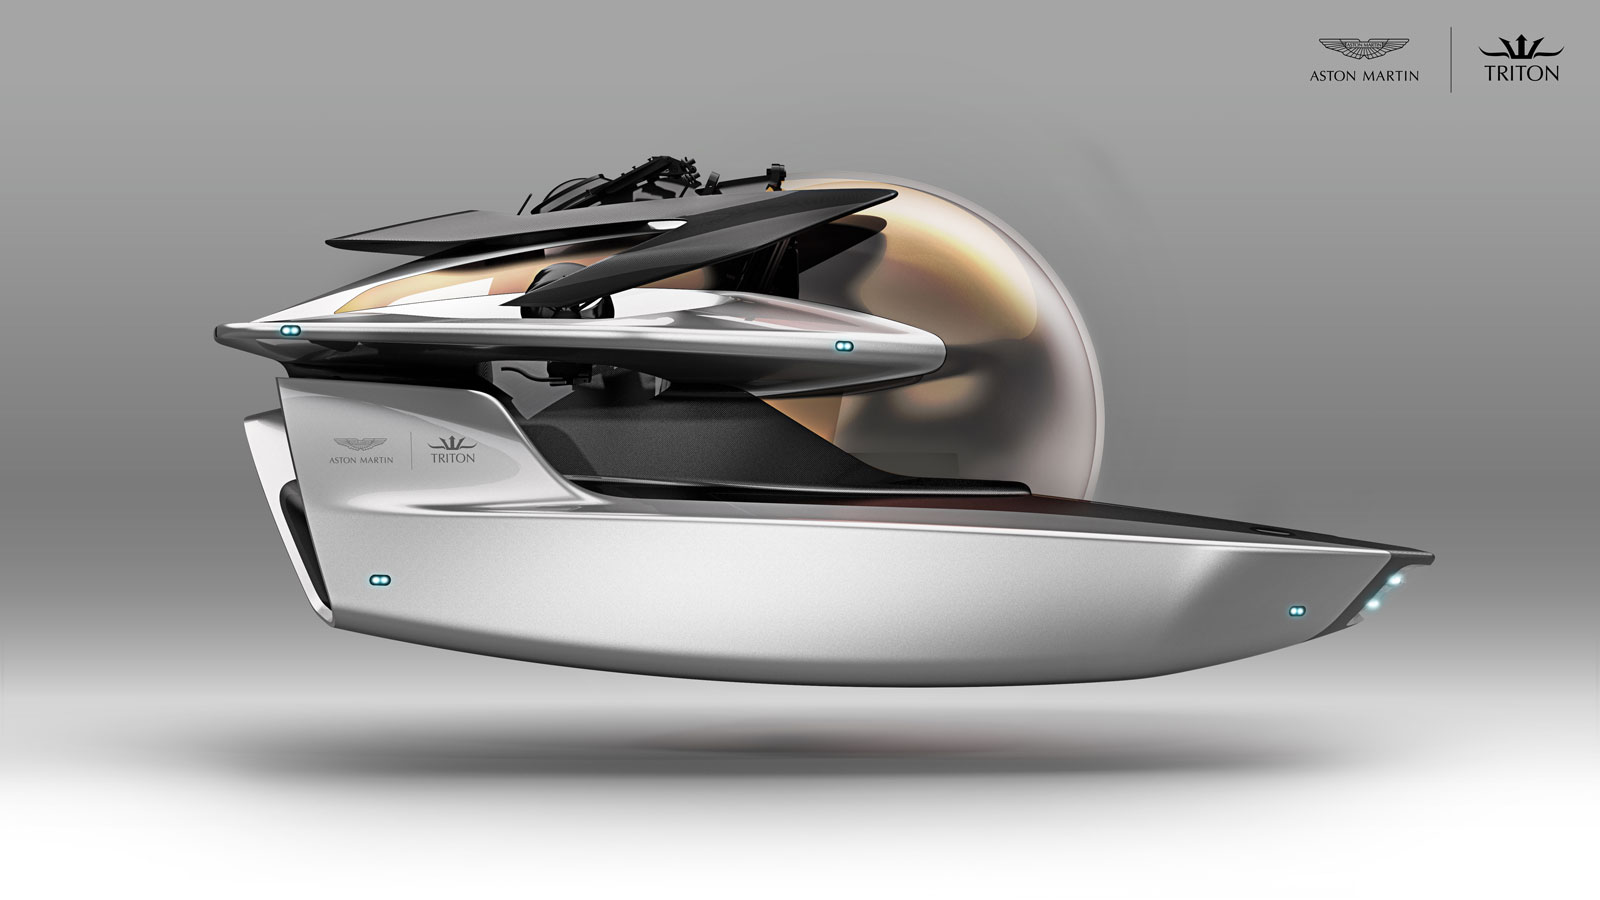 Aston Martin Triton Project Neptune Submersible Concept